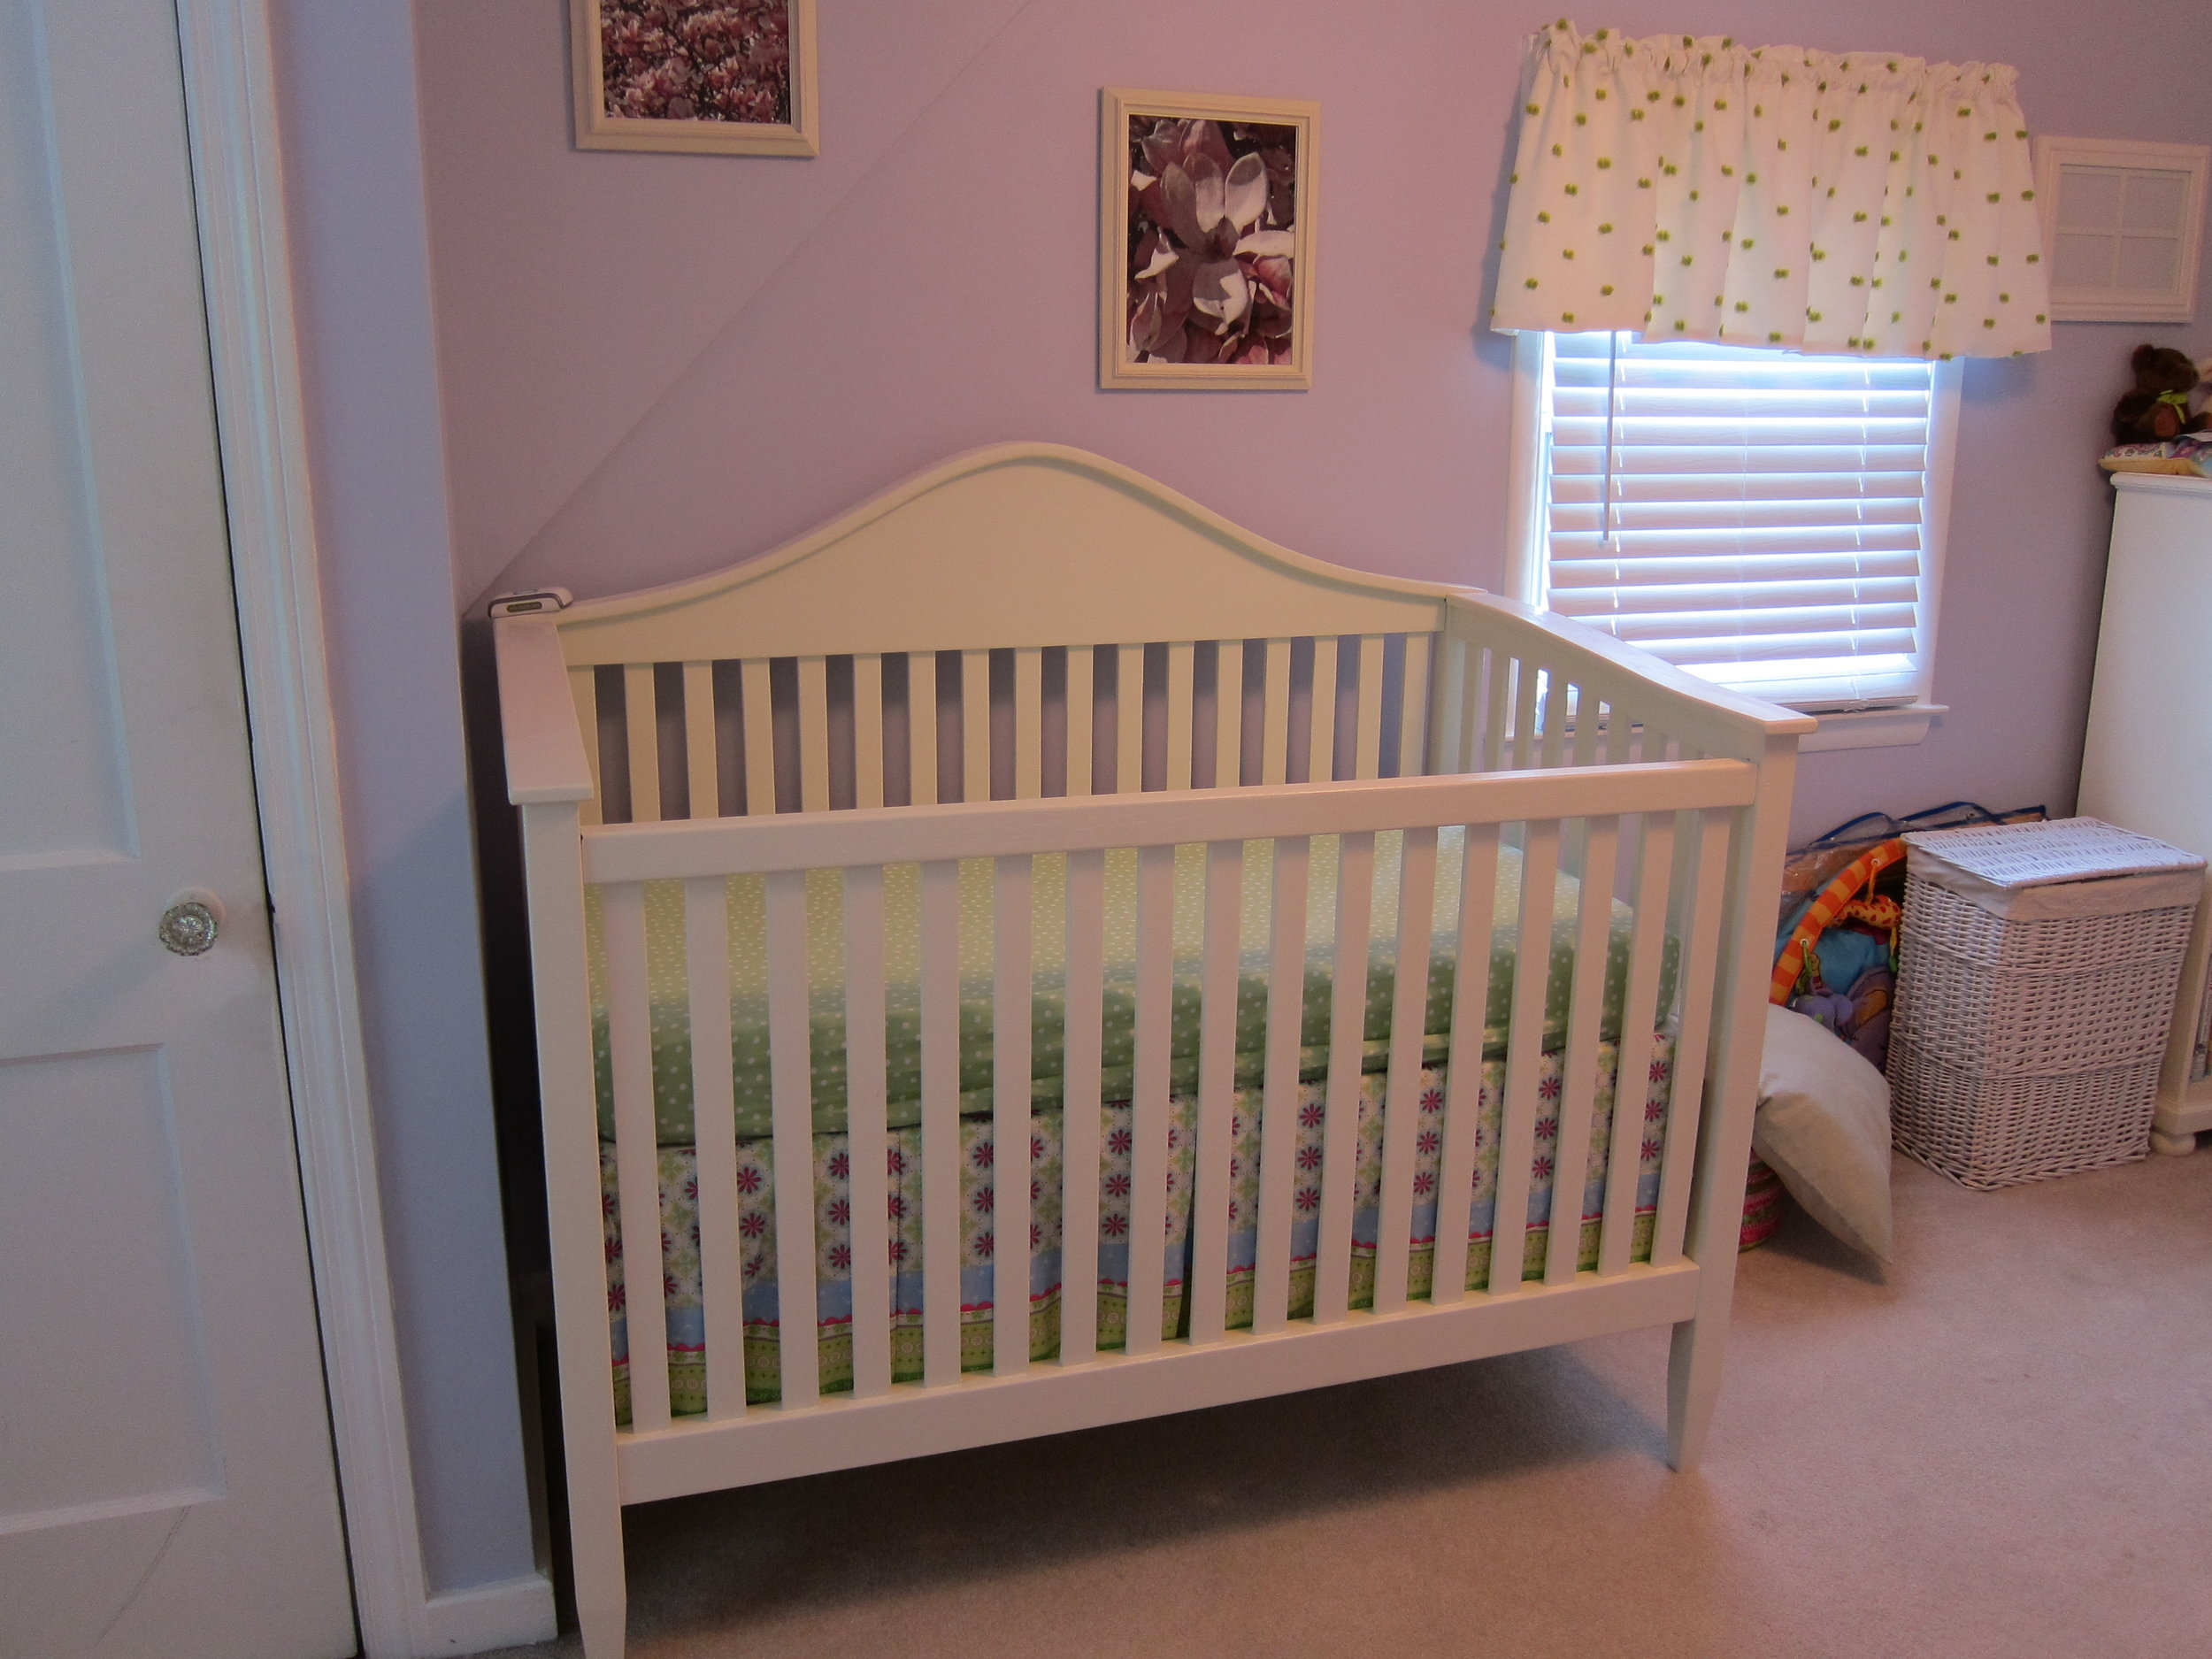 The finished crib delivered to her nursery